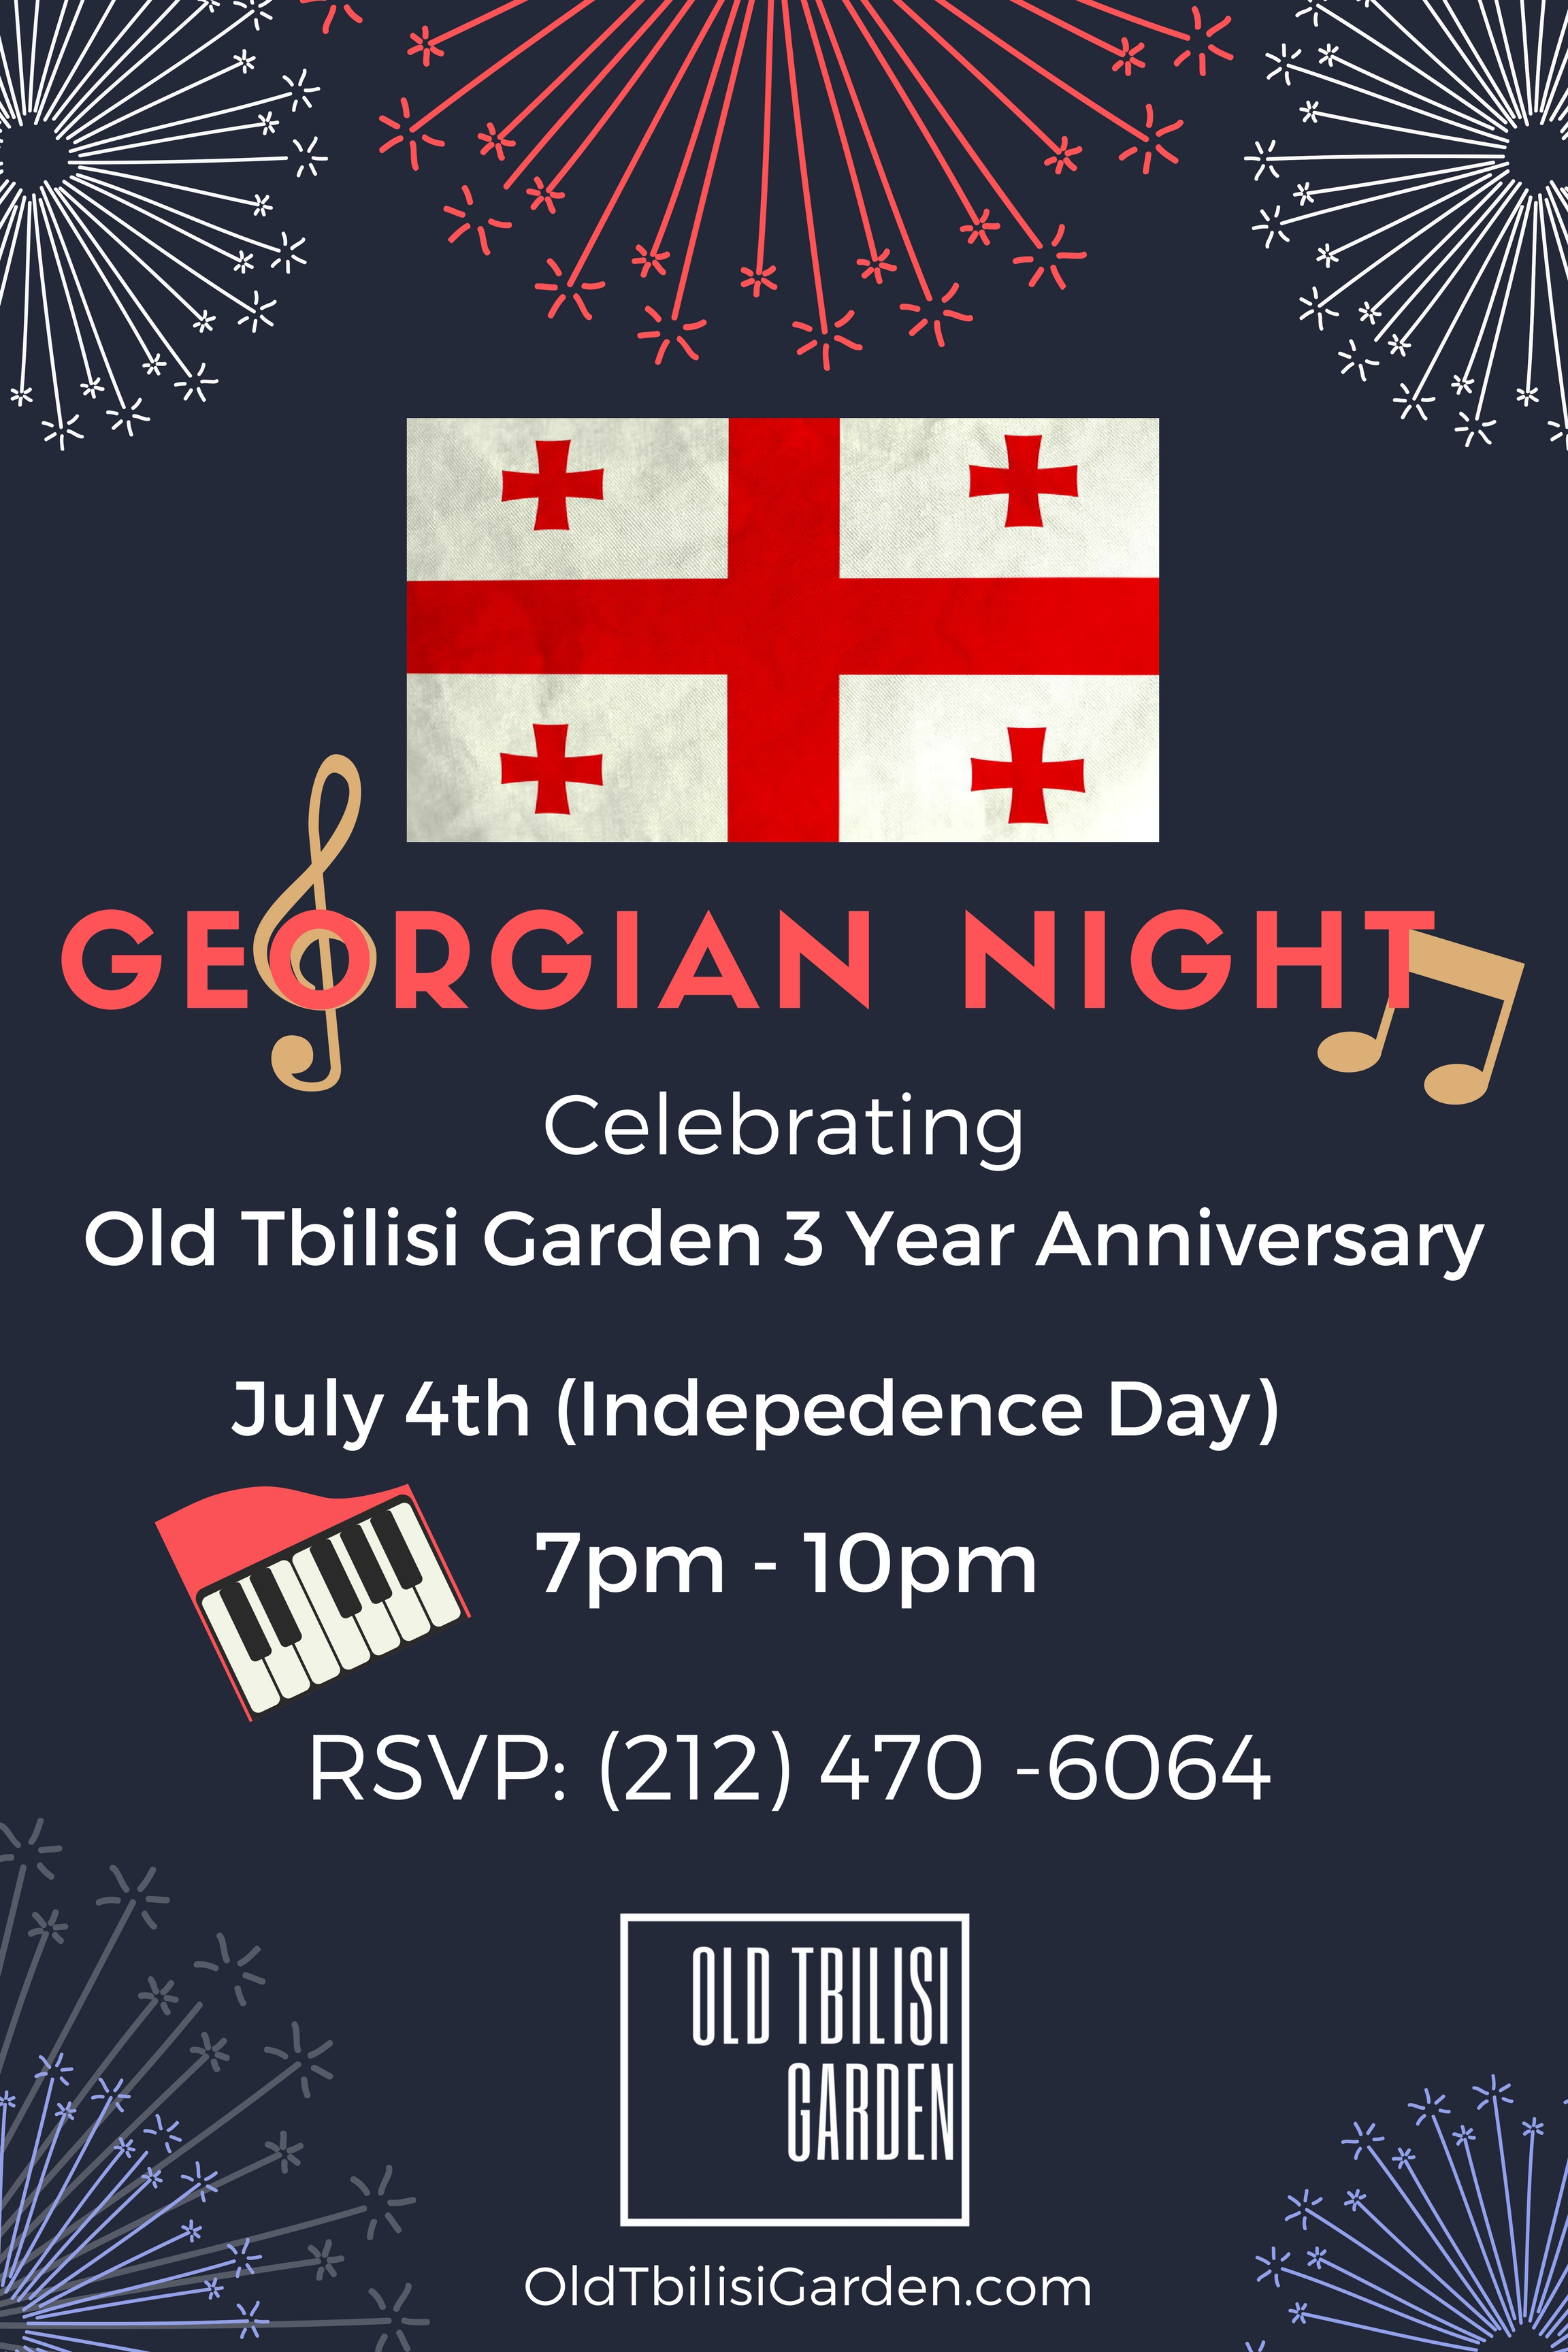 Georgian Night (07/04/2017) 7pm-10pm - Old Tbilisi Garden is three year-old on the day of July 4th Indepence day! We celebrate with amazing Georgian House band with great Georgian food.Thanks for everyone who joins us for this amazing night.